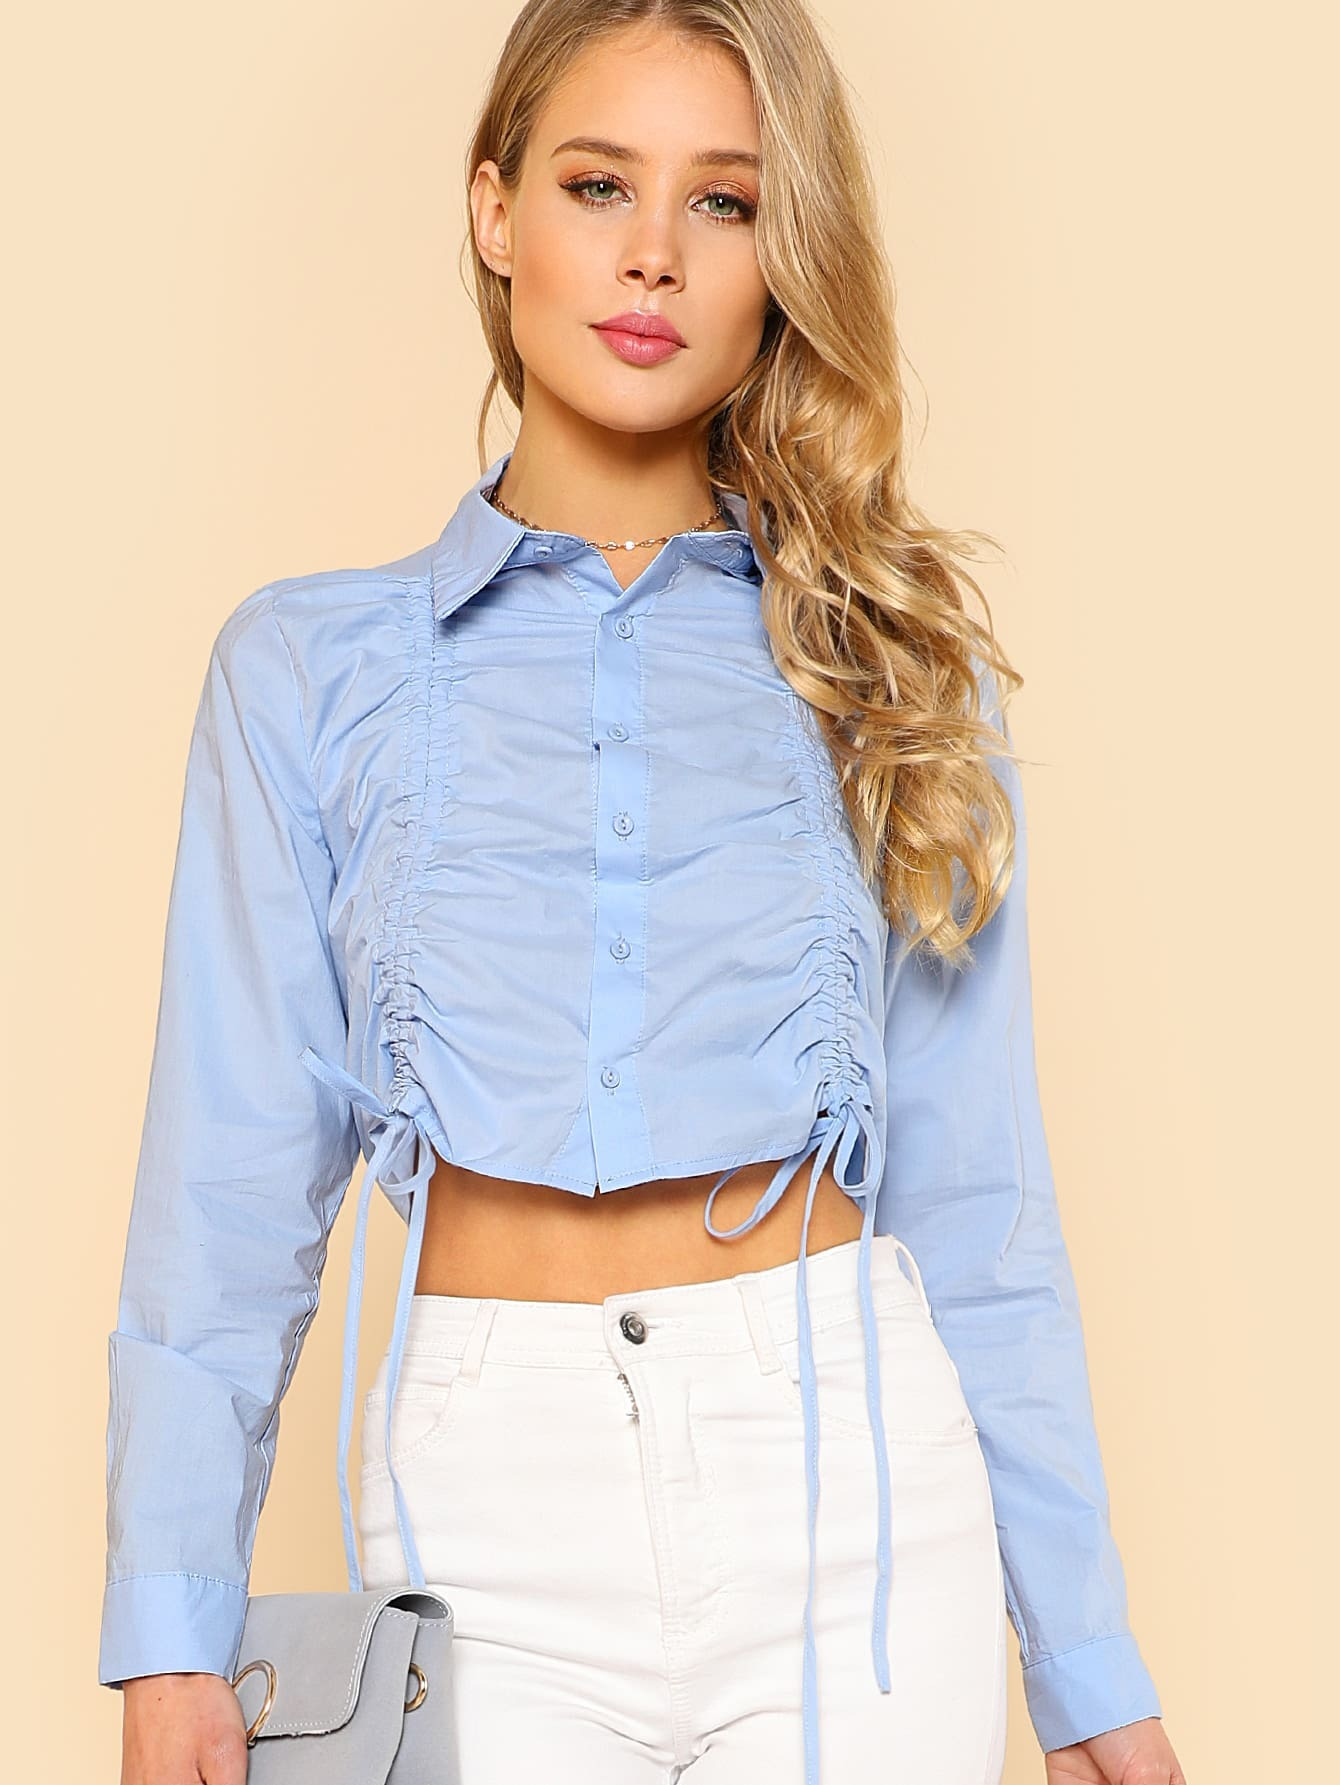 Dual Drawstring Tied Button Up Collared Crop Top BLUE